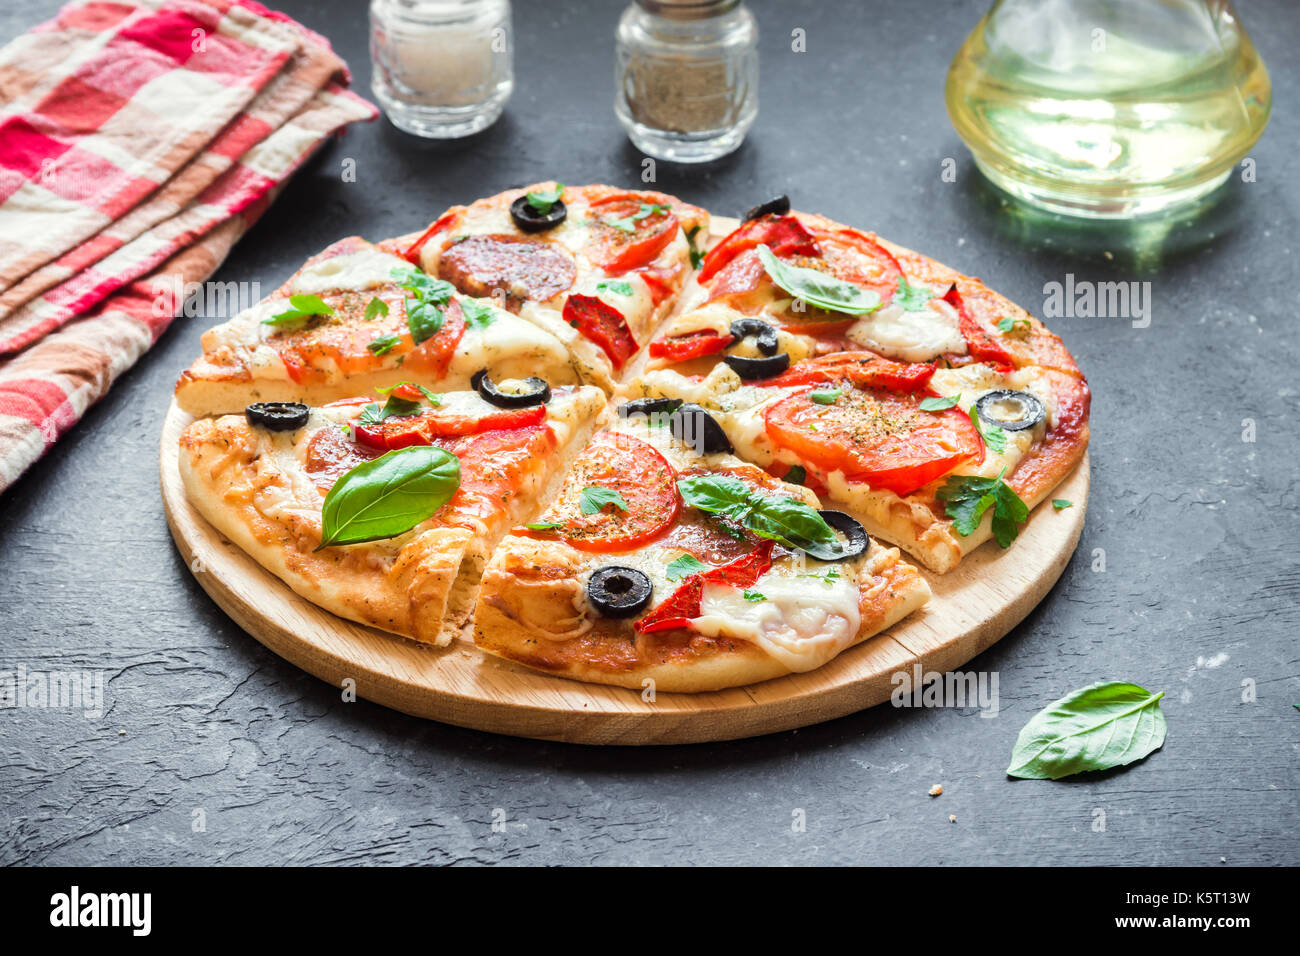 Italian Pizza with Tomatoes, Salami, black Olives and Mozzarella Cheese, top view. Fresh Homemade Pizza. - Stock Image